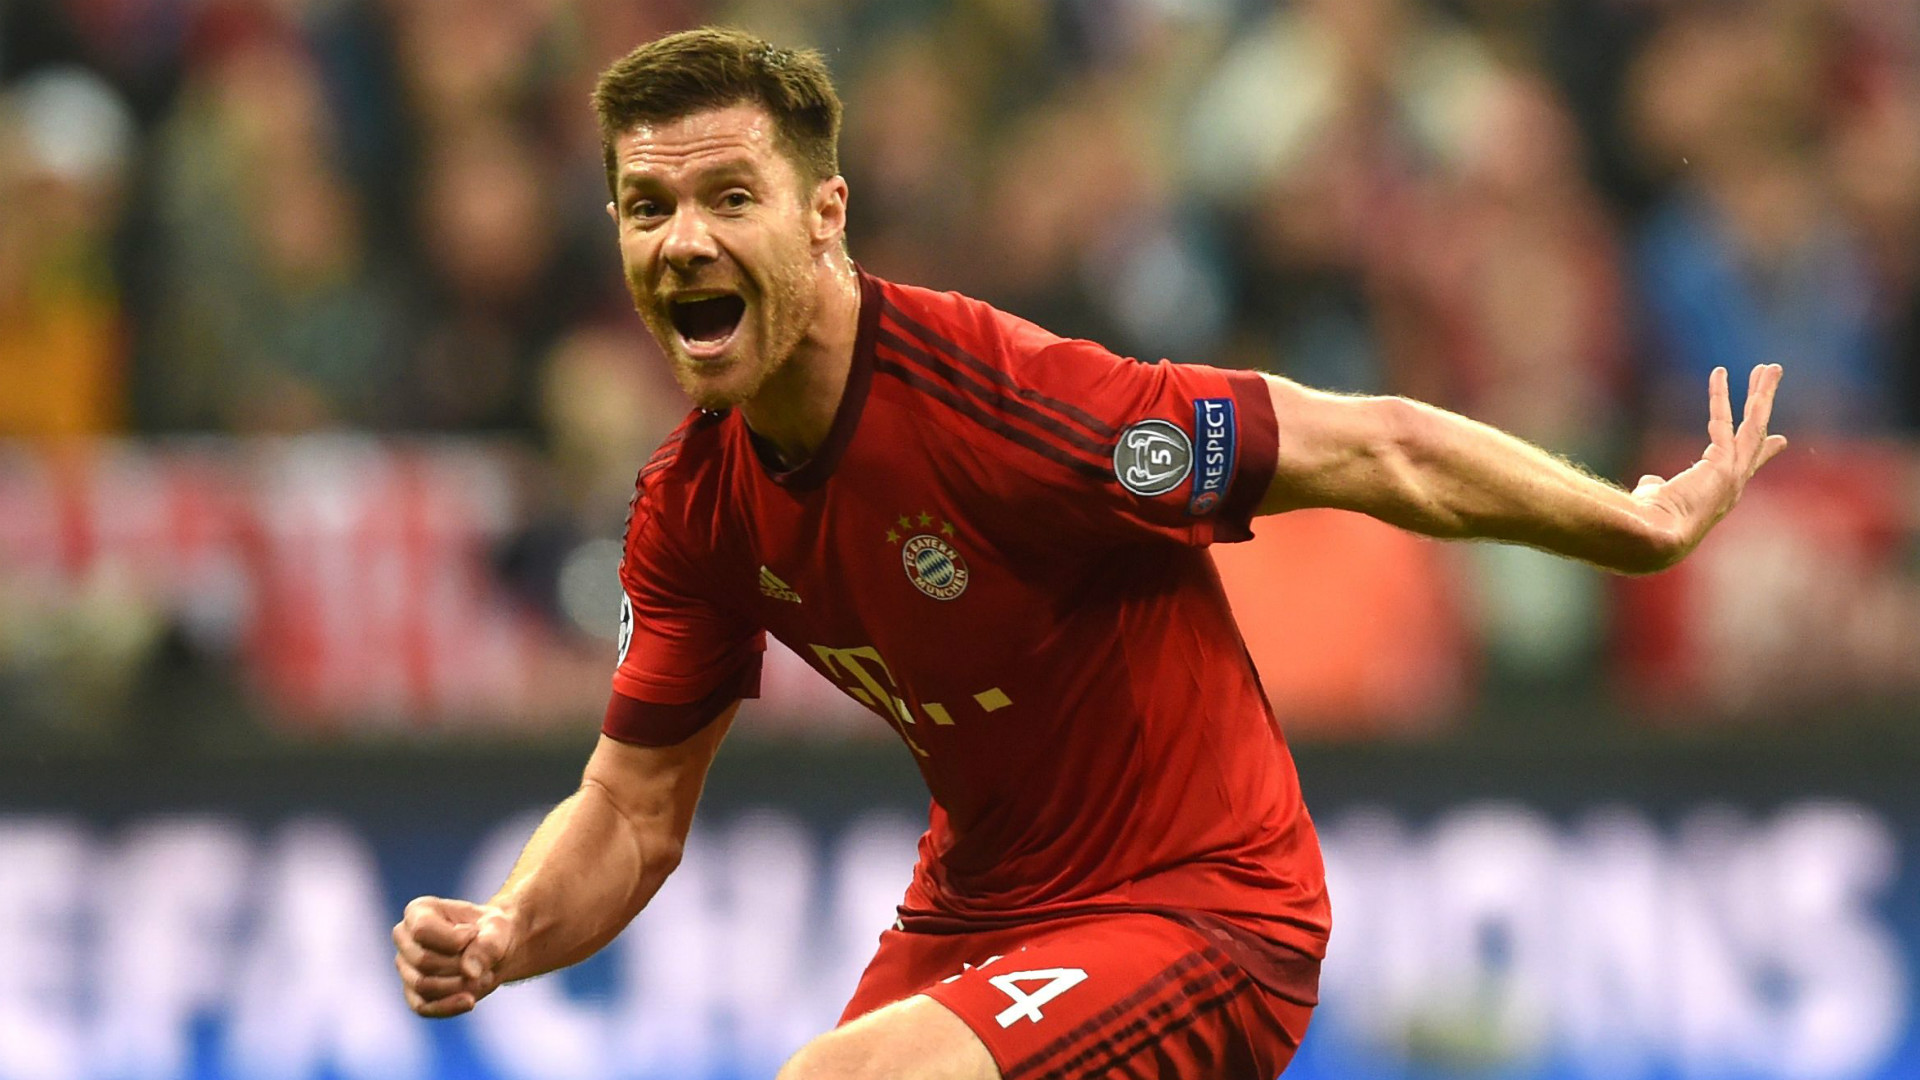 XABI ALONSO BAYERN MUNICH CHAMPIONS LEAGUE 03052016